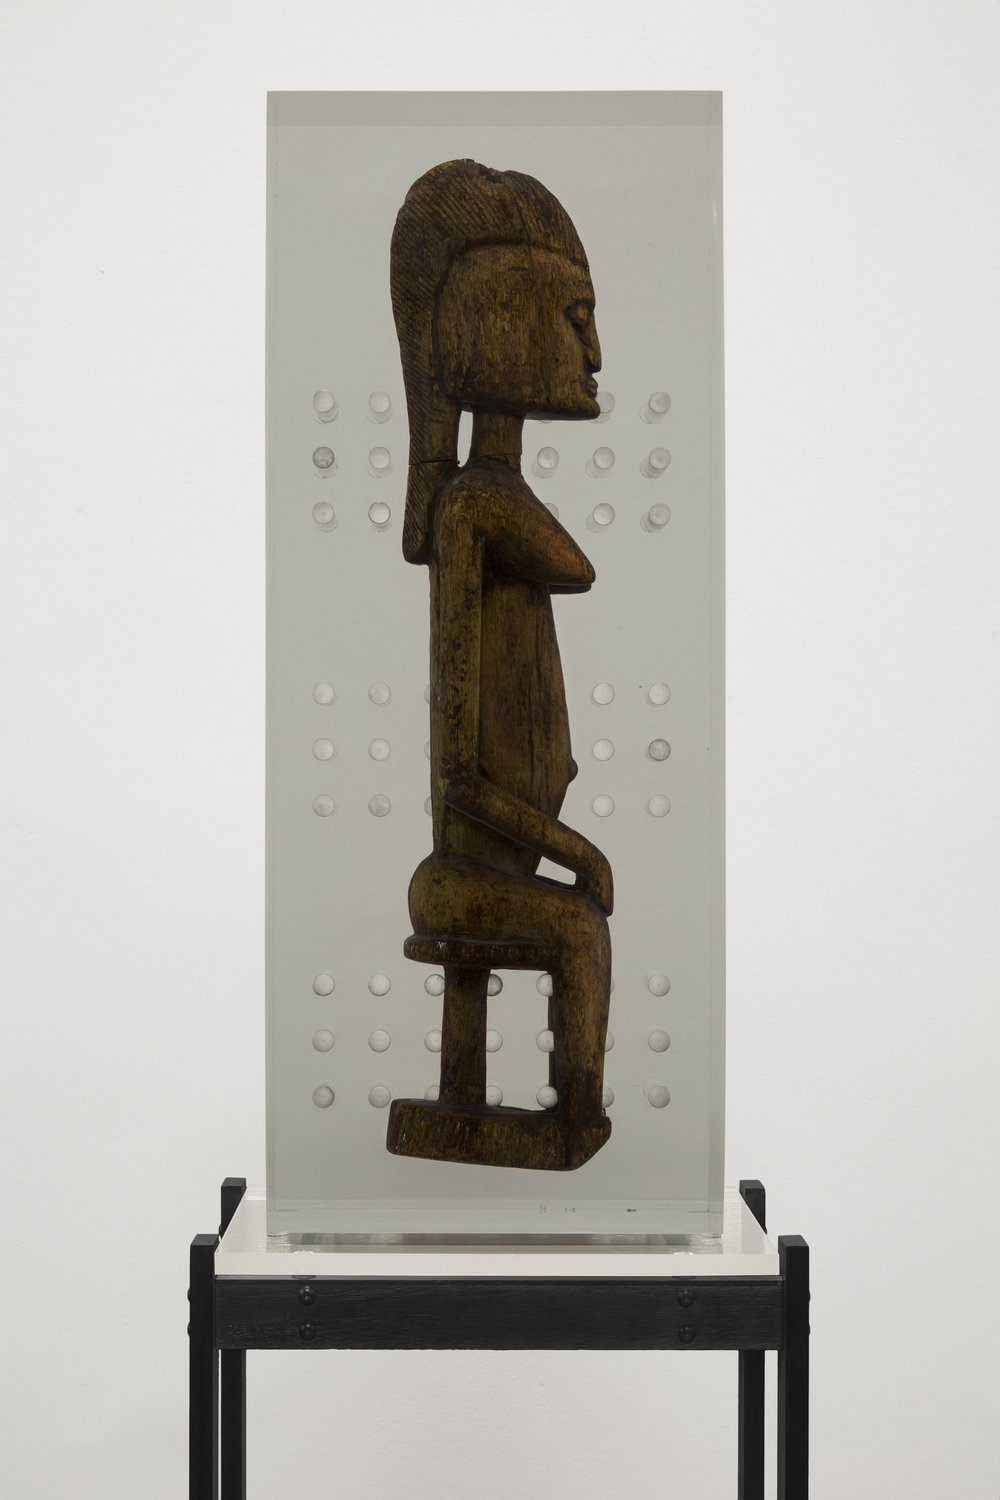 Matthew Angelo Harrison,  Dark Silhouette: Fixtured Woman , 2018, Wooden sculpture from West Africa, polyurethane. resin, anodized aluminum, acrylic. 72 x 23 x 15 1/2 inches